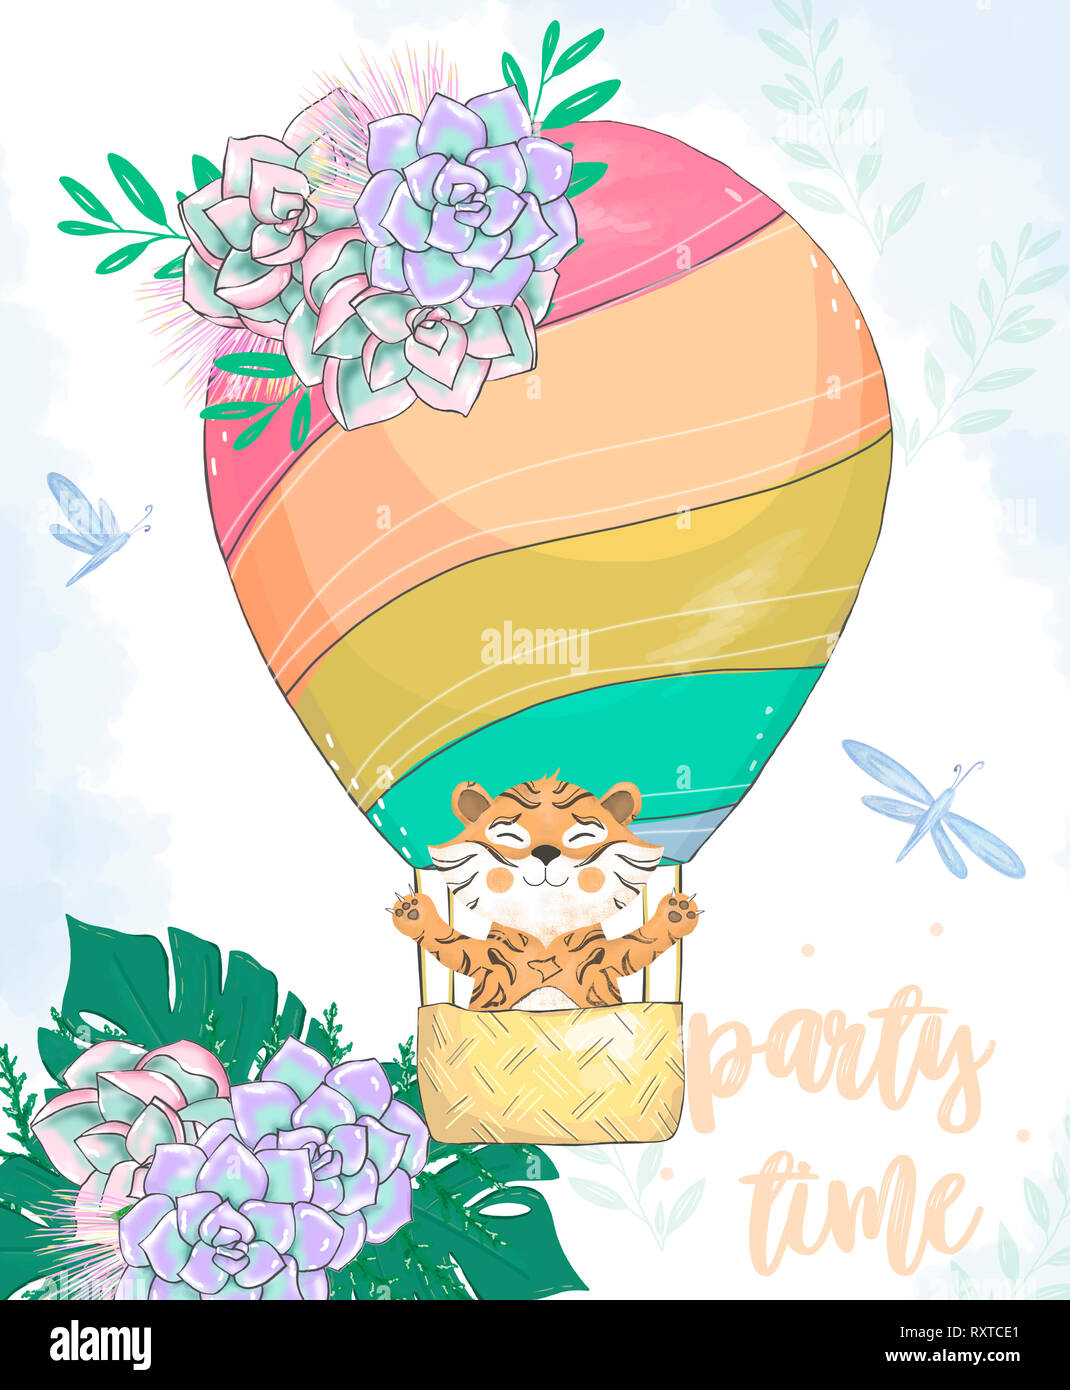 Watercolor Tiger In Basket Balloon Digital Clip Art Cute Animal And Flowers On Head Party Time Text Greeting Celebration Birthday Card Funny African